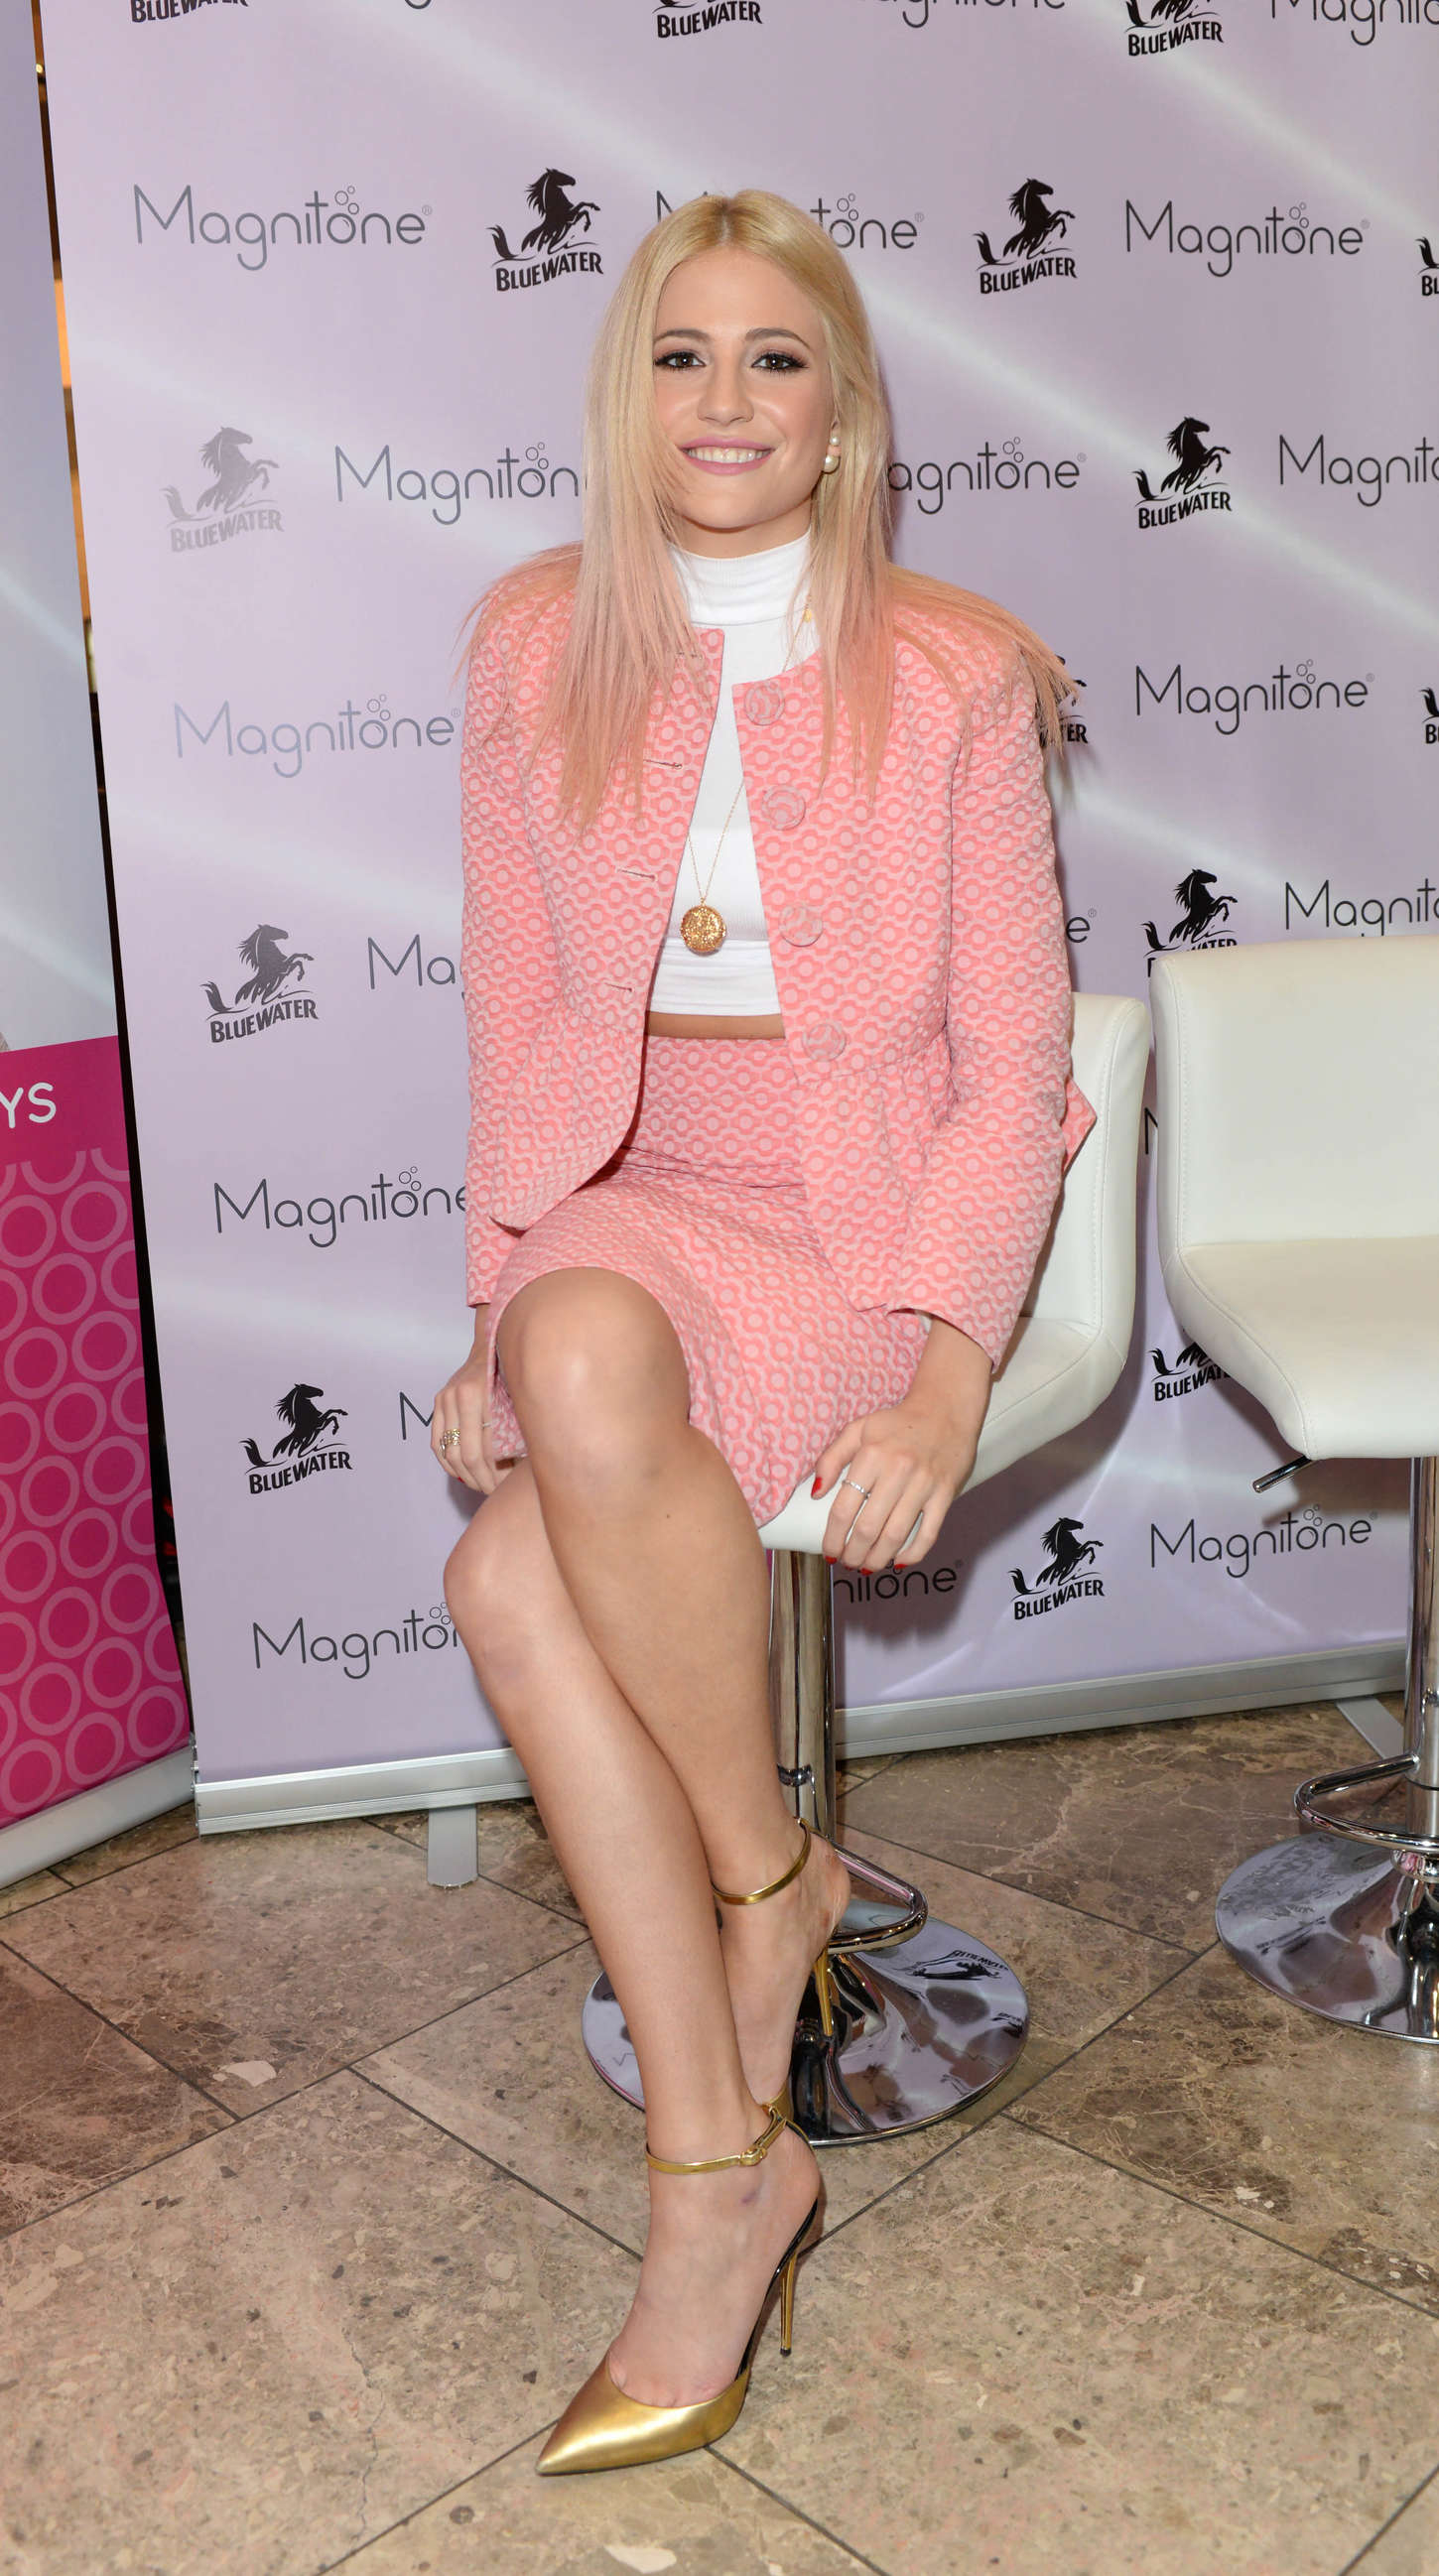 b6d81fc1a3271 Pixie Lott – Magnitone Lucid in Greenhithe. December 11